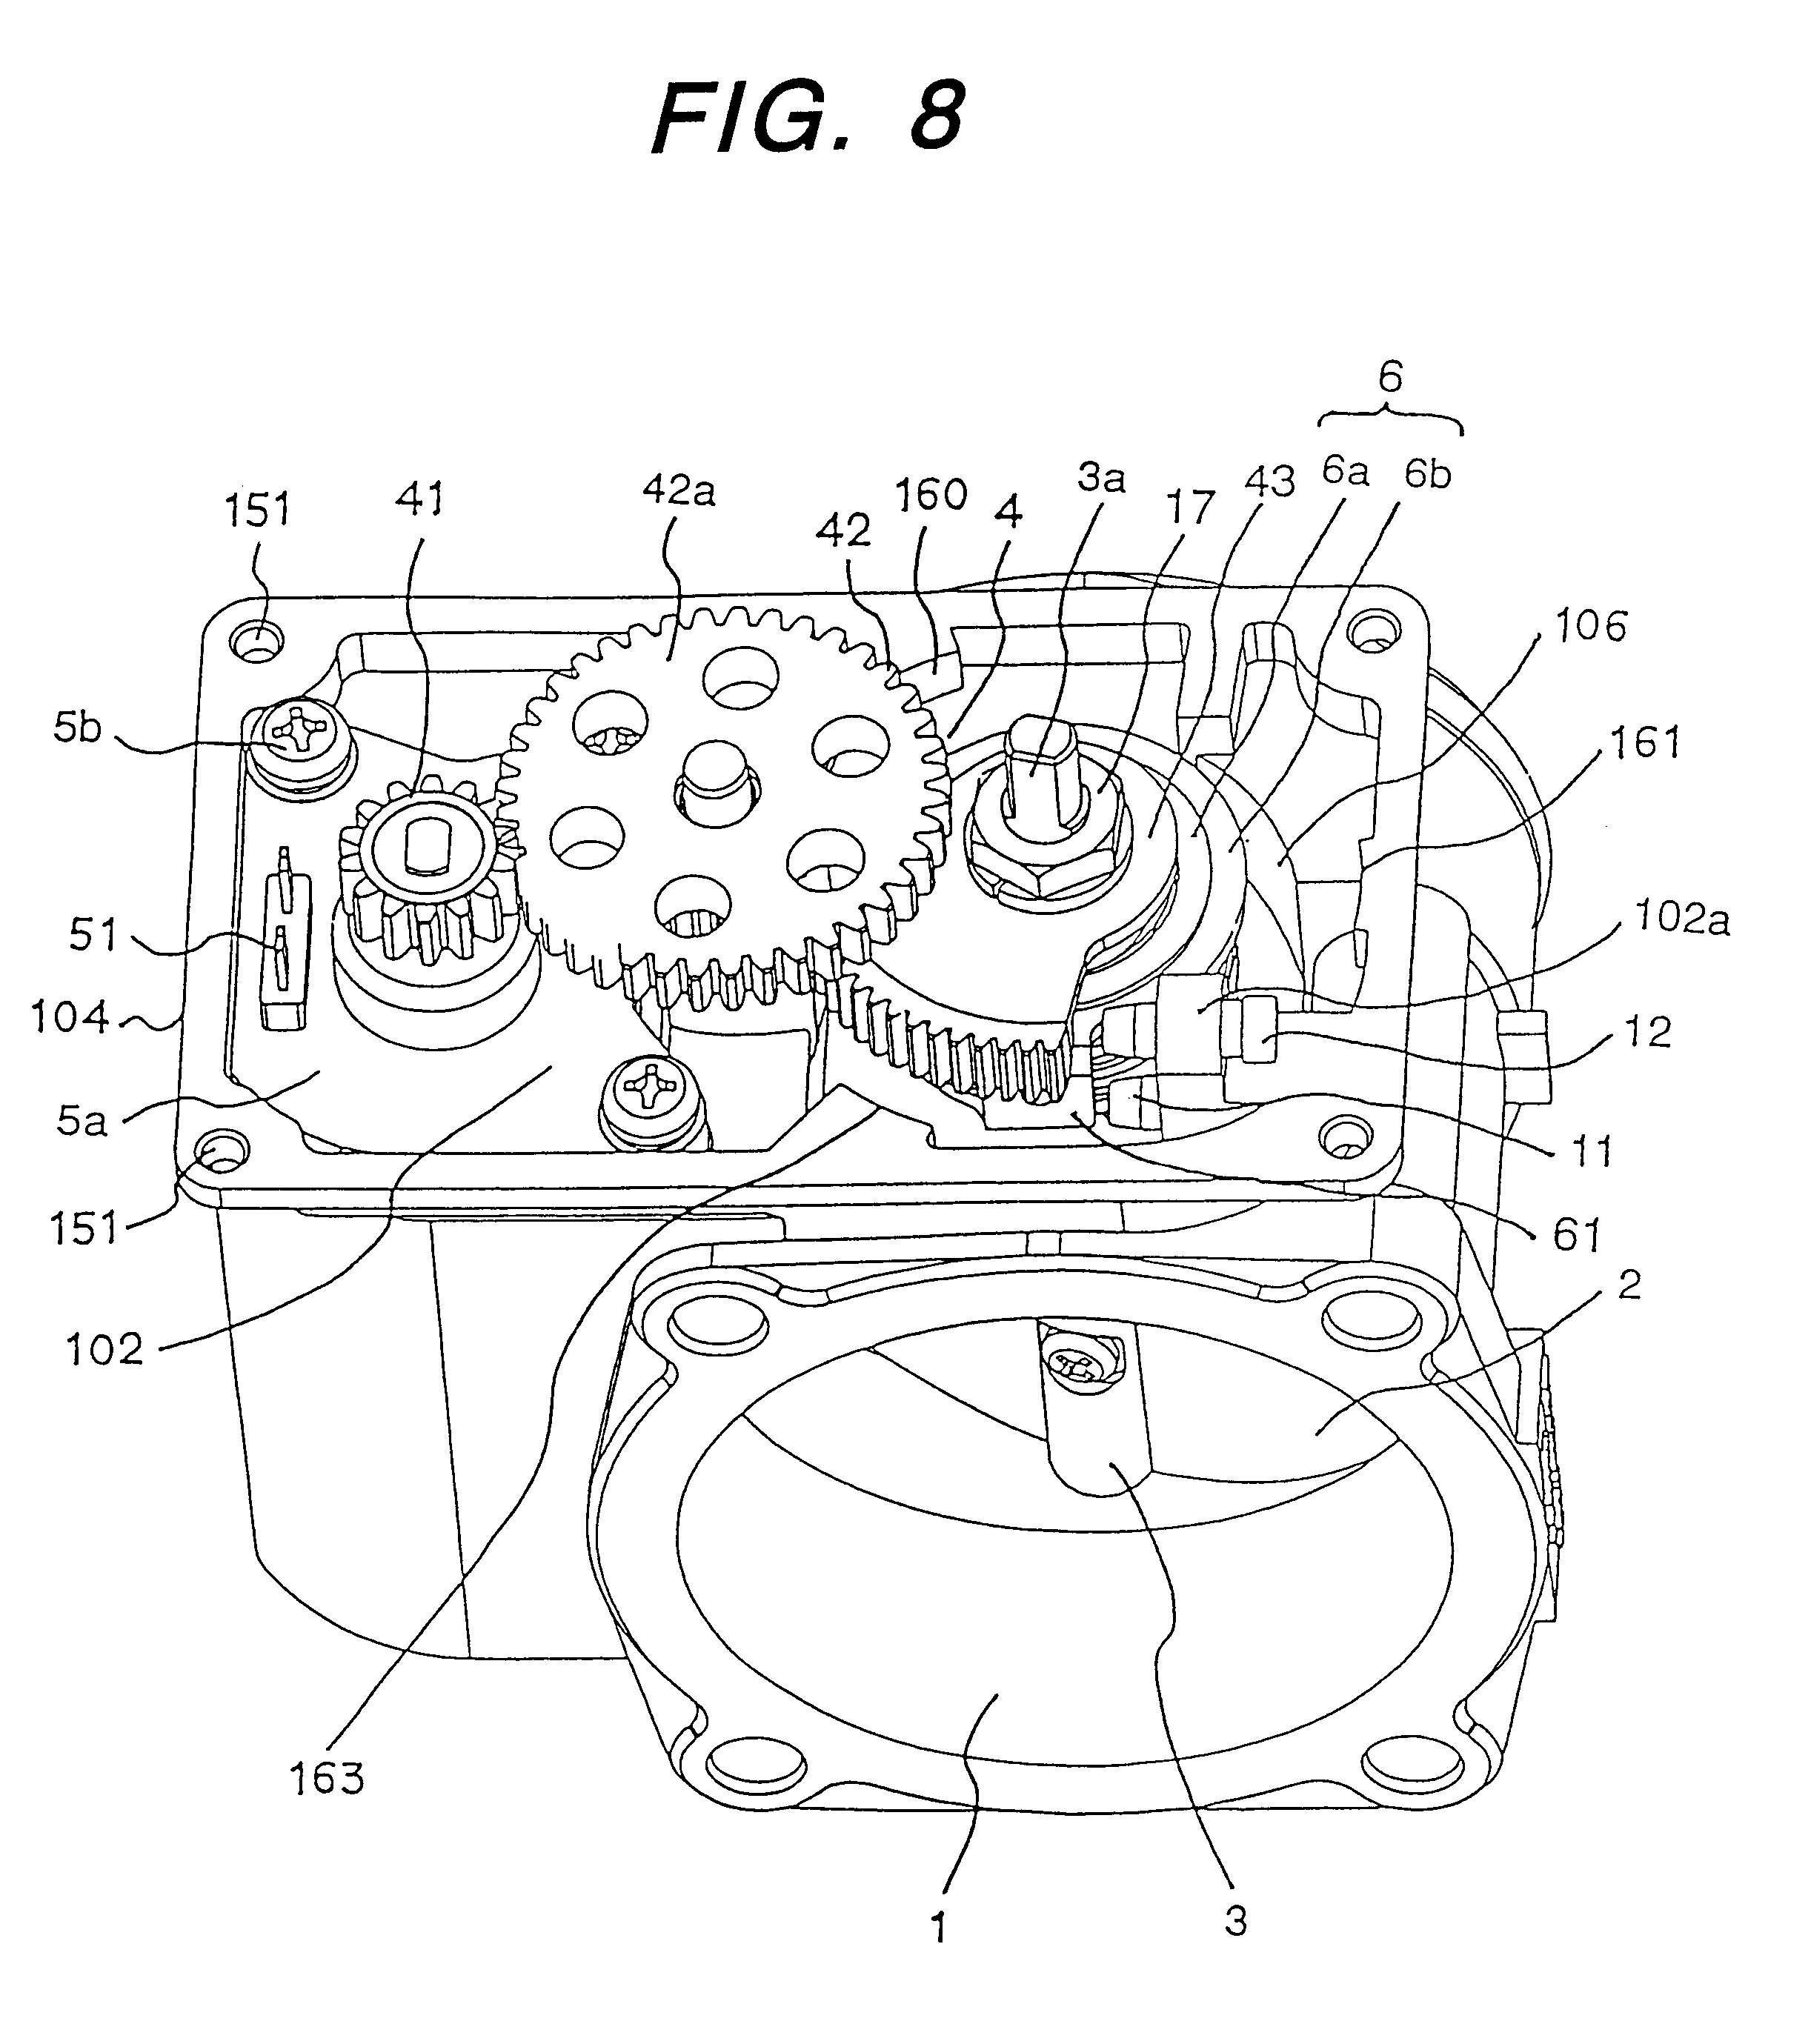 Combustion Engine Lever : Patent us throttle device of internal combustion